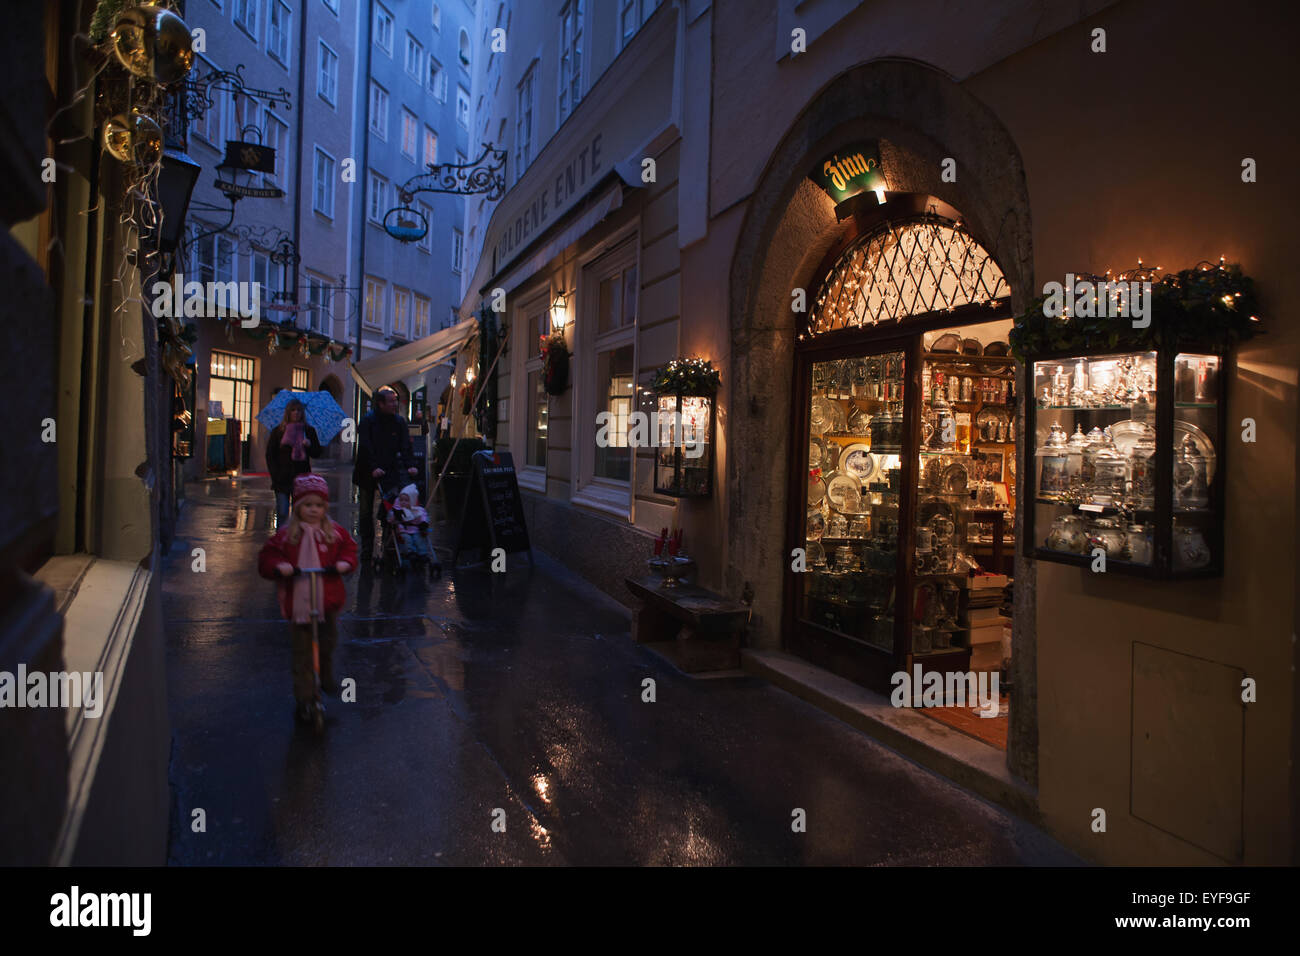 A family strolls past an antique shop in the pedestrianised streets of the old city on a rainy day; Salzburg, Austria Stock Photo